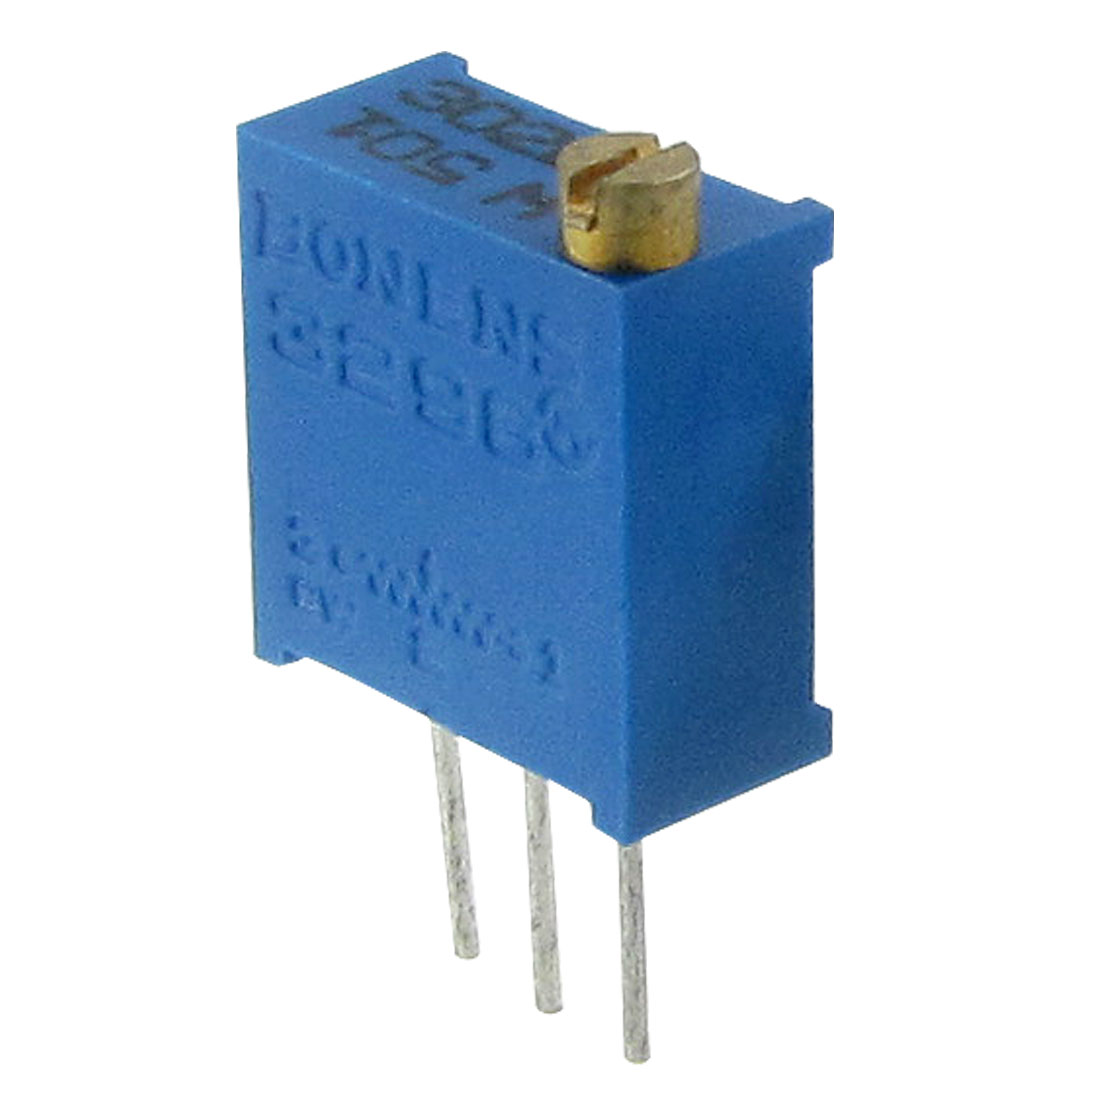 1-2W-500-Ohm-Through-Hole-3296-Trimmer-Pot-Potentiometer-5-Pcs